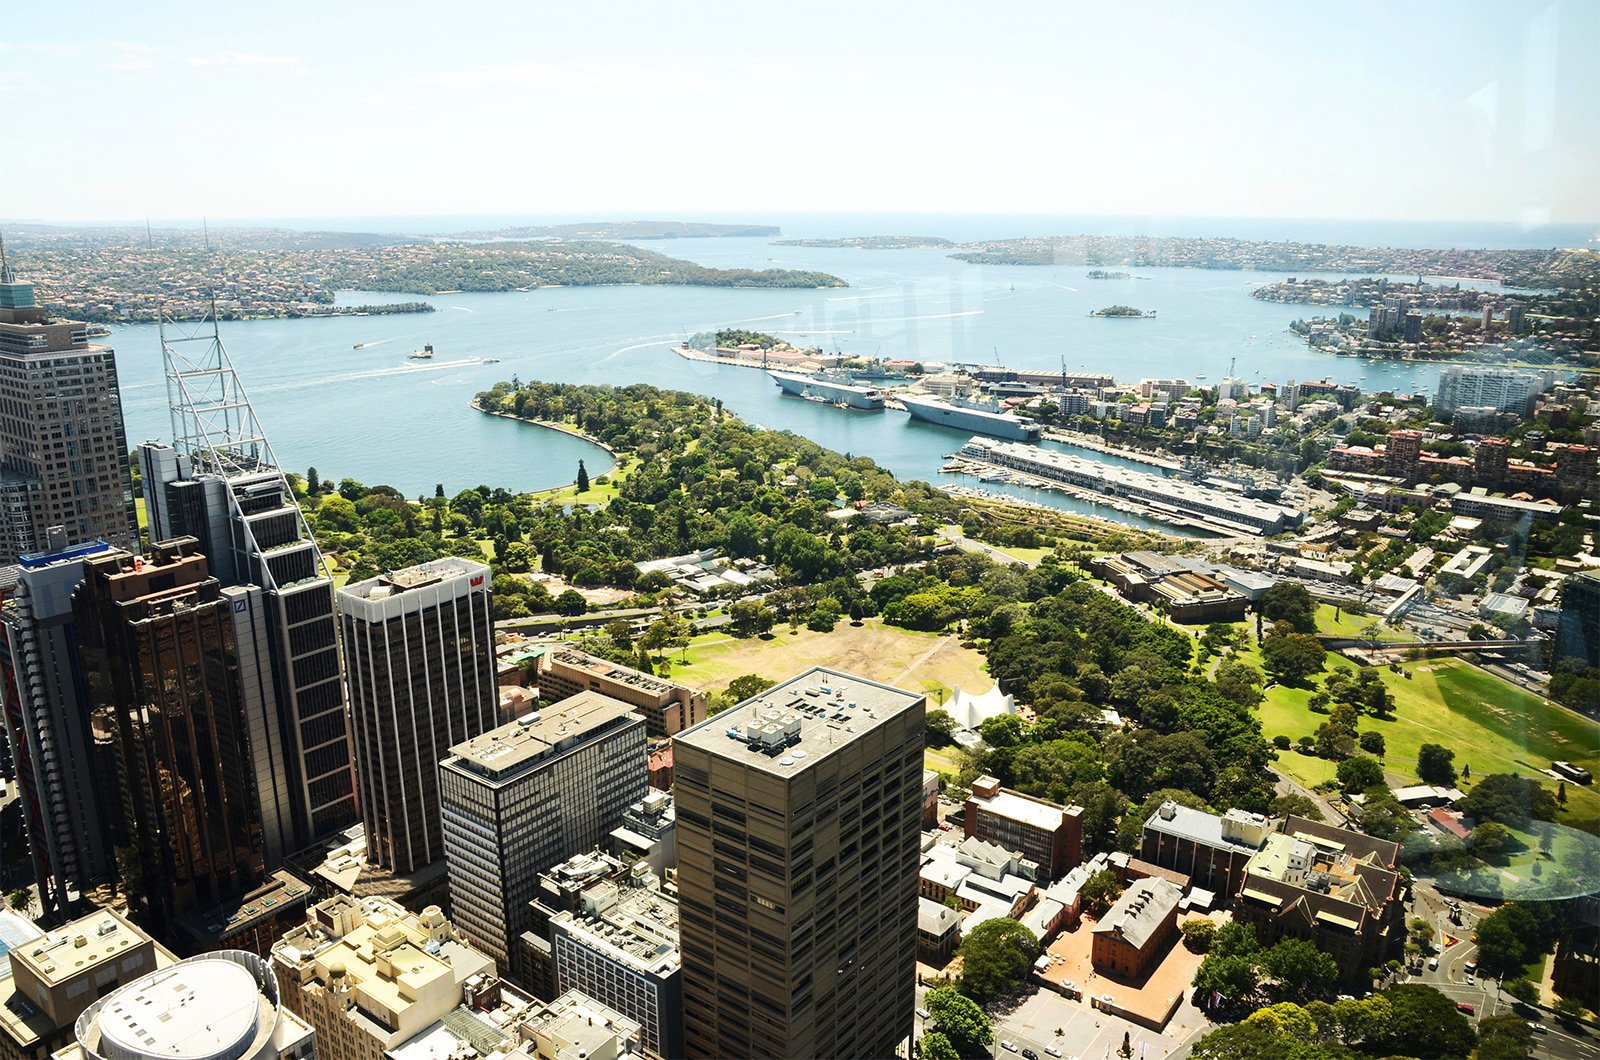 How to come on up to Sydney Tower Eye in Sydney